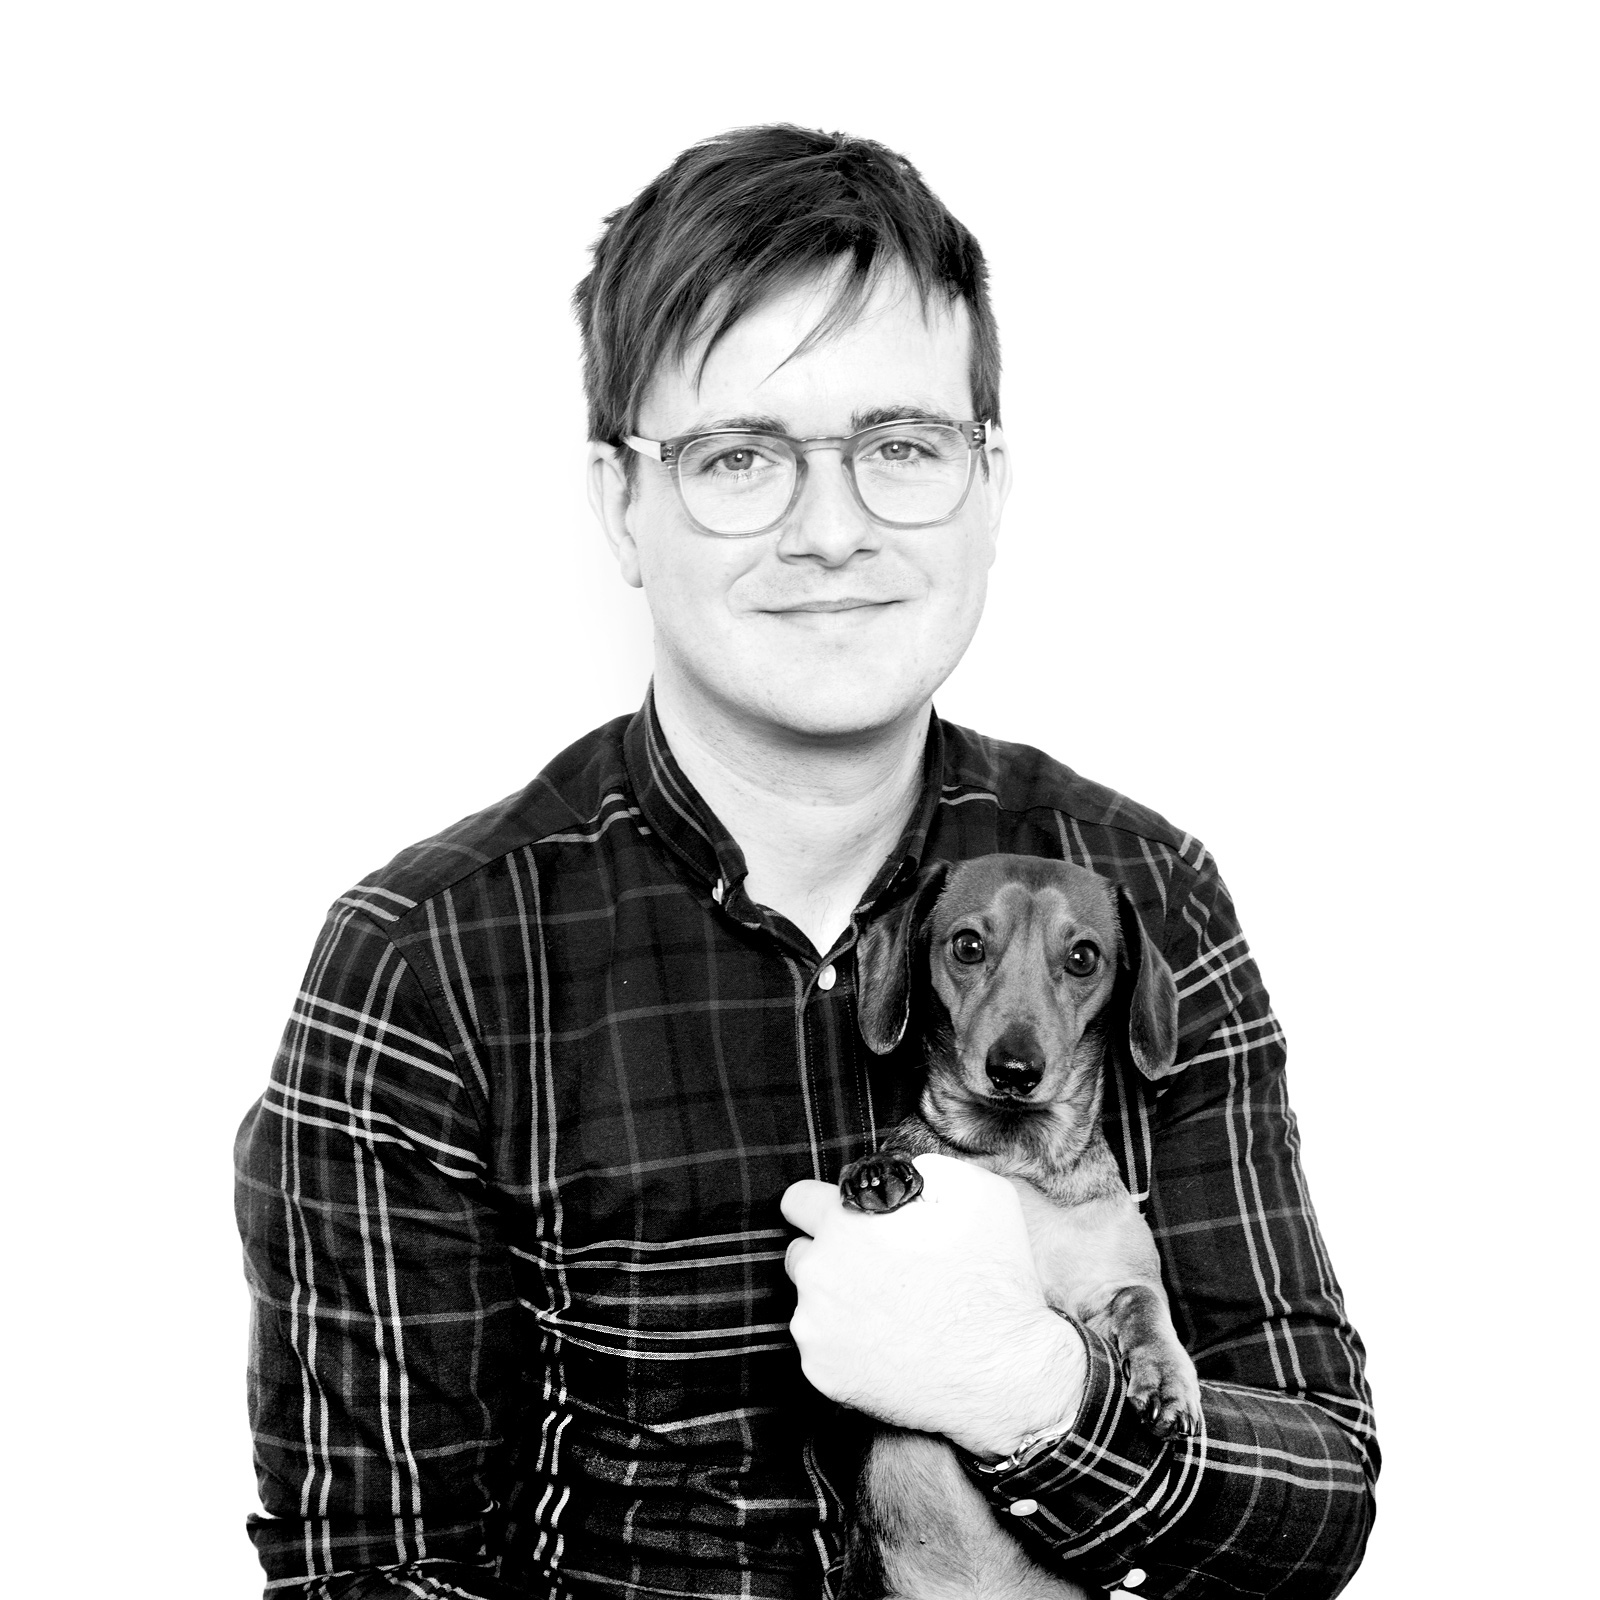 Above: Mark Callaby and Scout, one of the company's two Dacshunds. Mark founded Ooh Deer in 2011 with Jamie Mitchell.